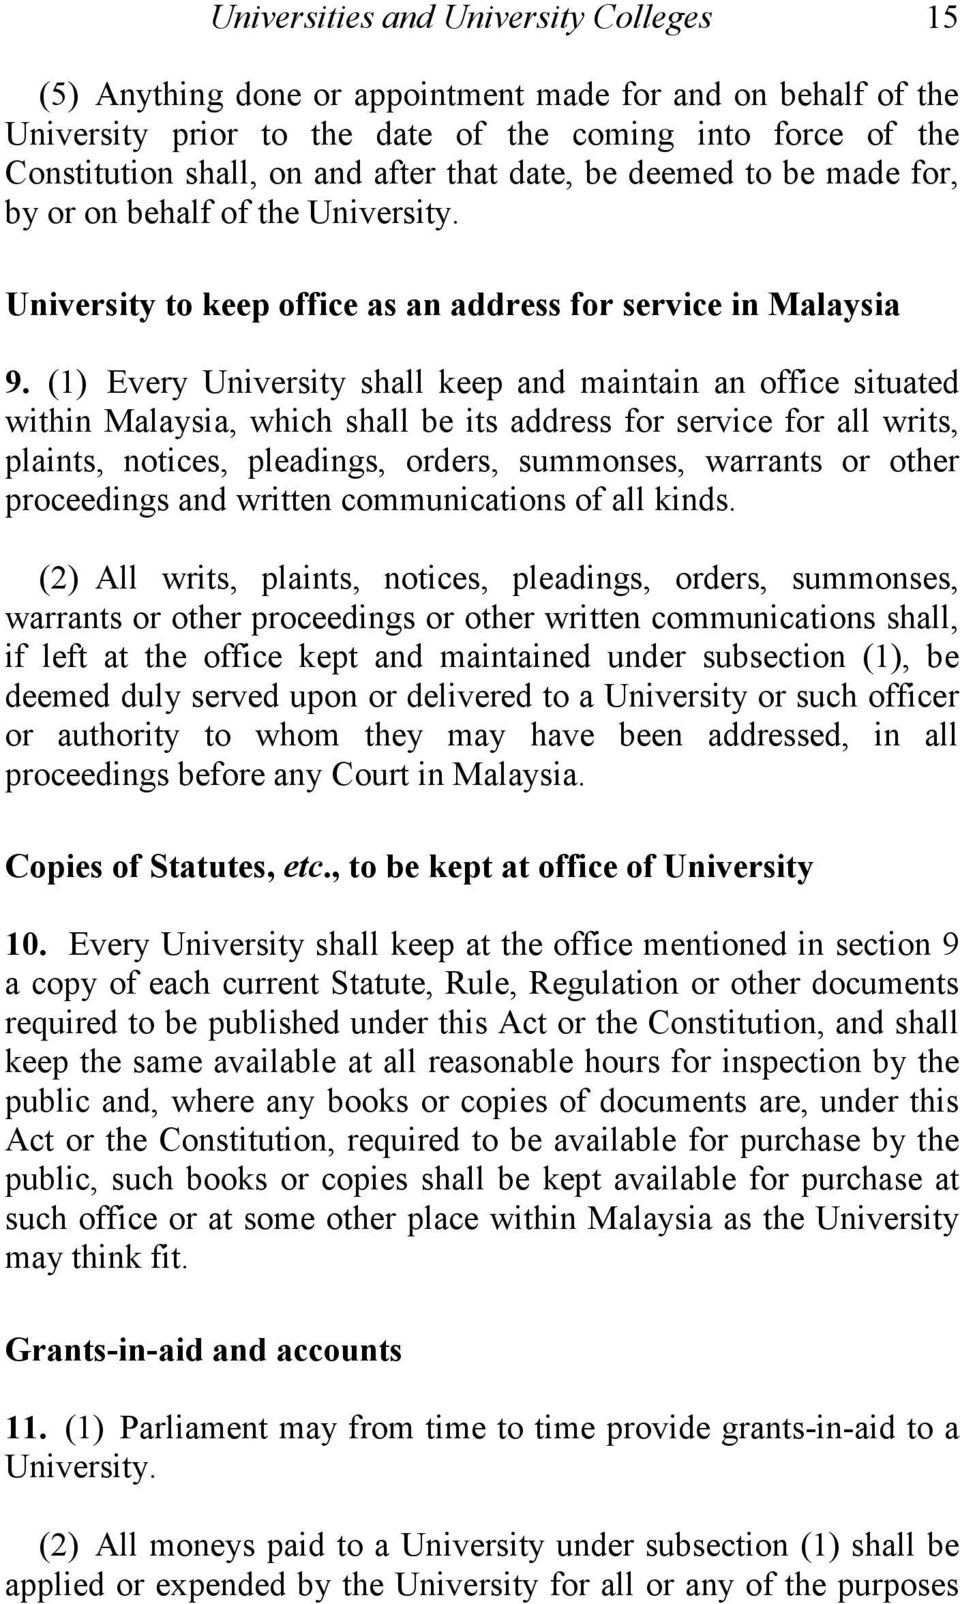 (1) Every University shall keep and maintain an office situated within Malaysia, which shall be its address for service for all writs, plaints, notices, pleadings, orders, summonses, warrants or